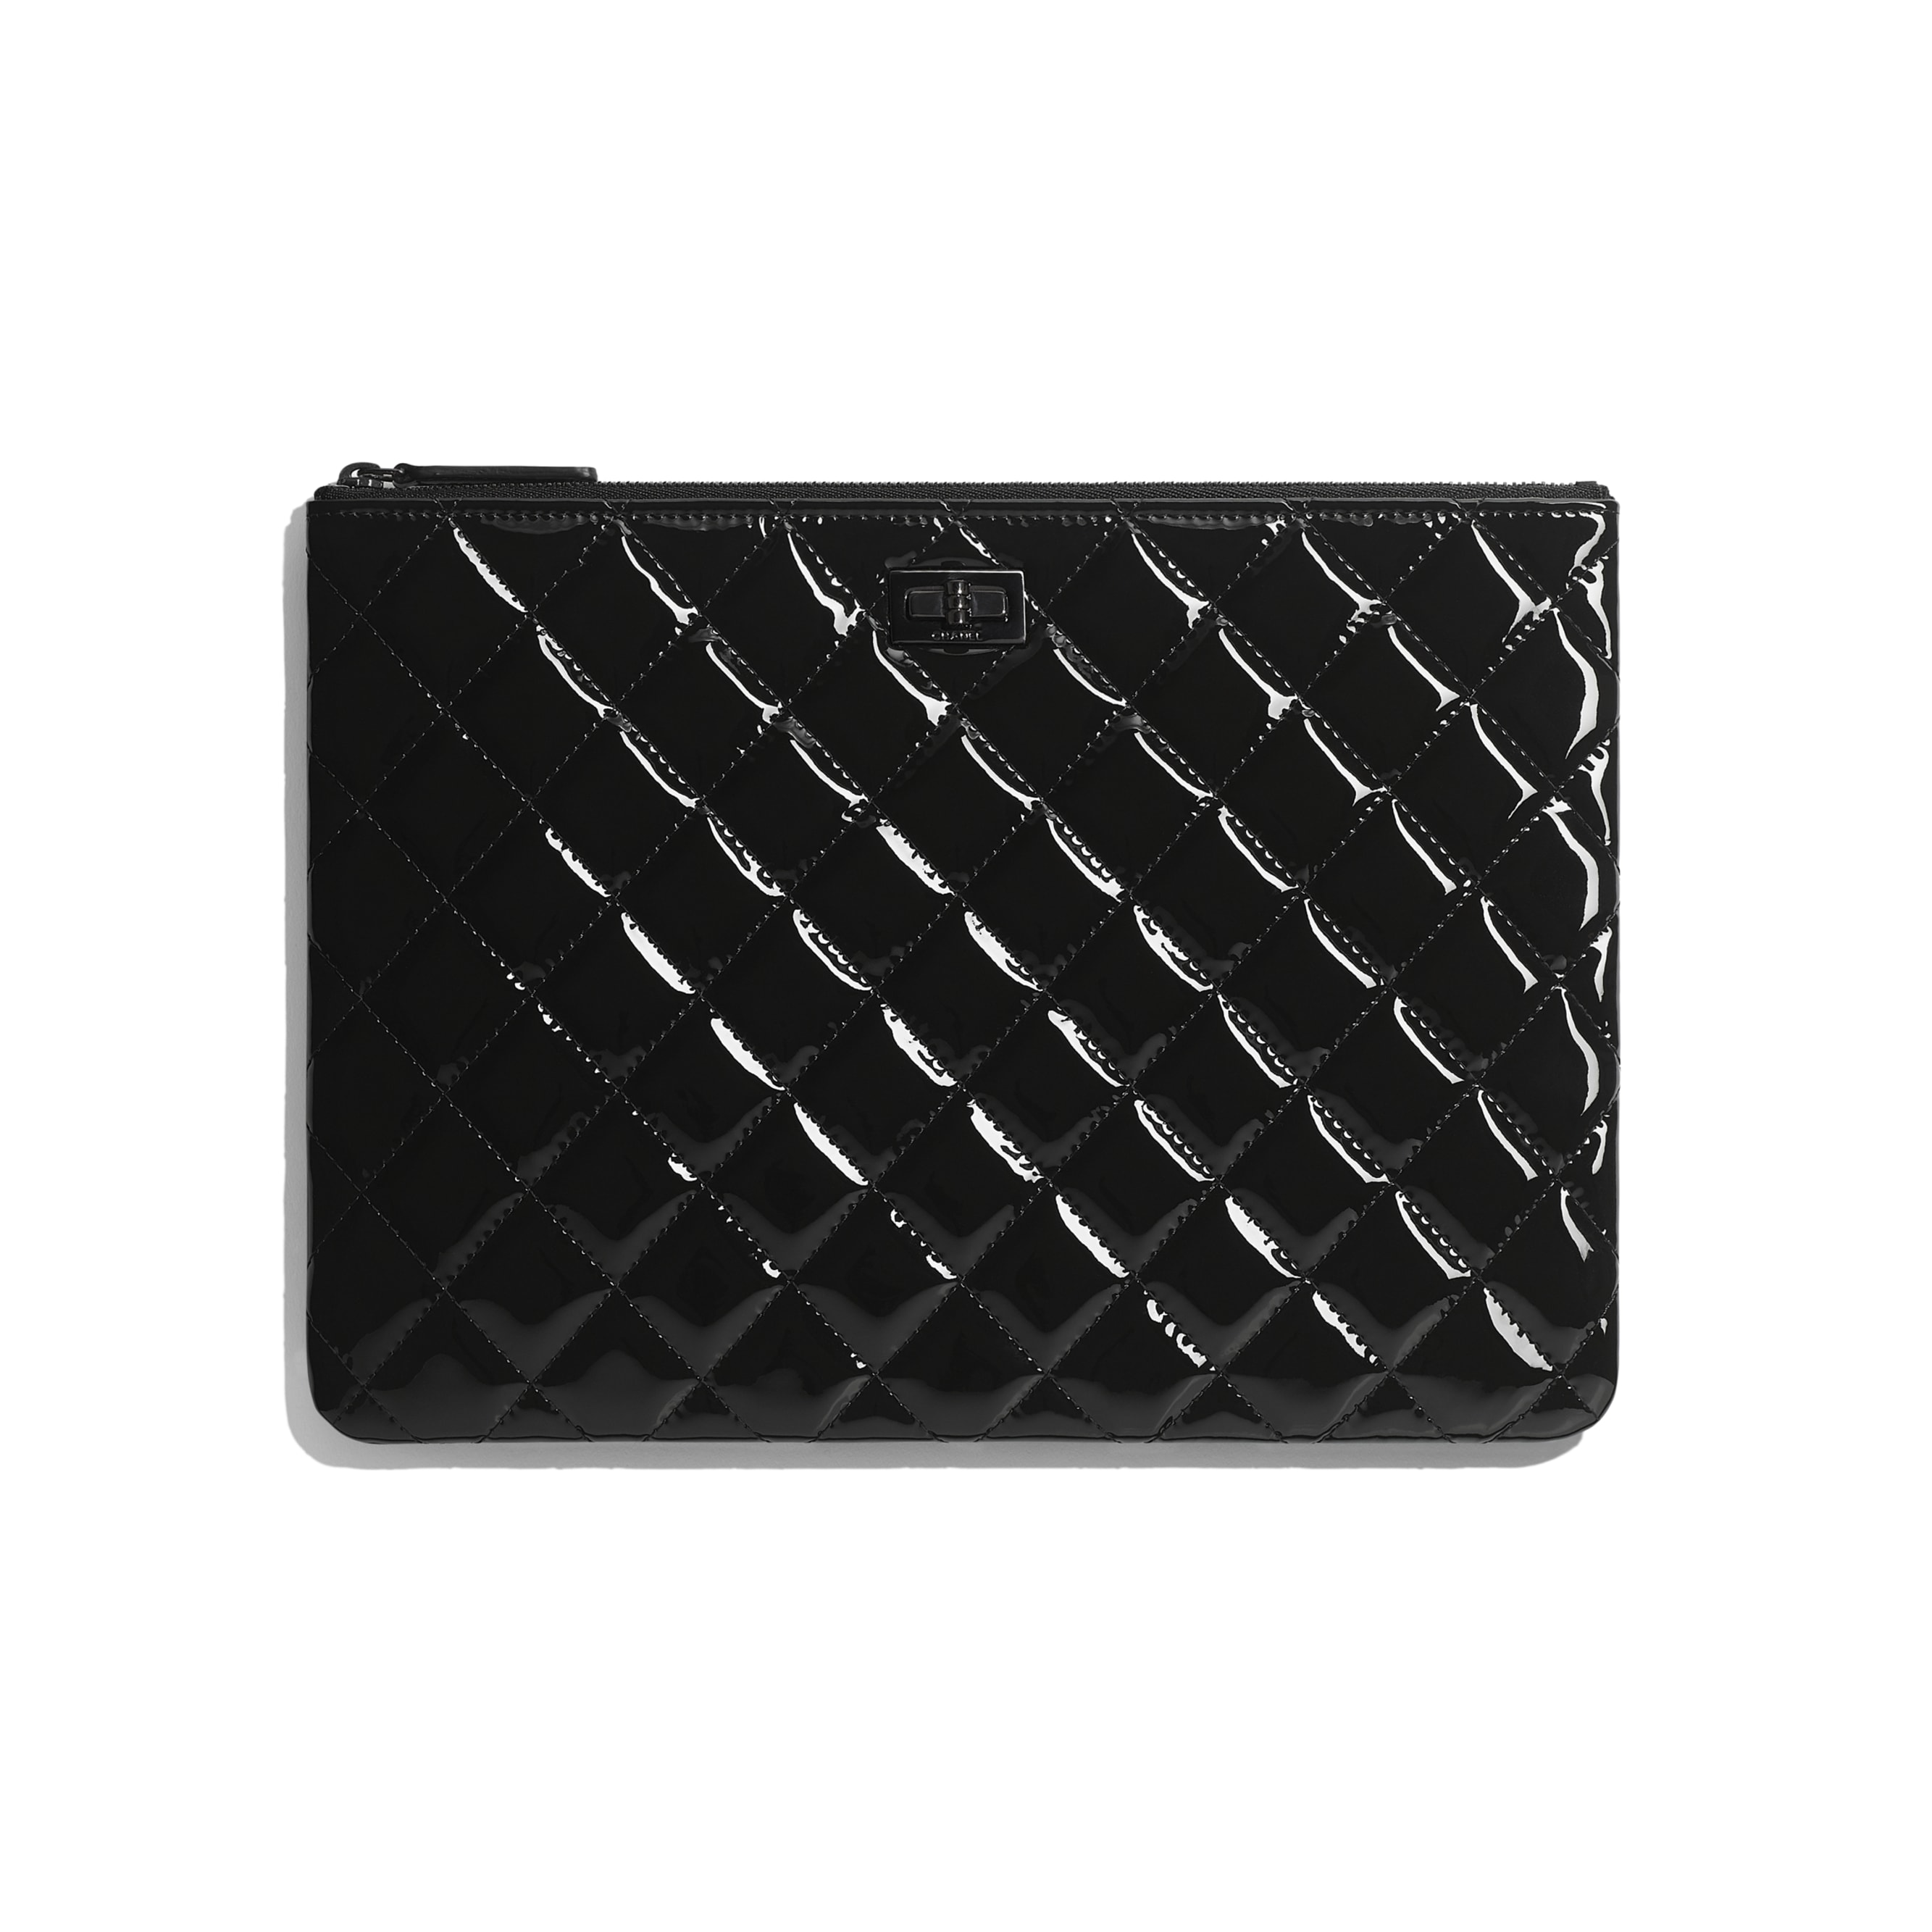 2.55 Pouch - Black - Patent Calfskin & Black Metal - CHANEL - Default view - see standard sized version